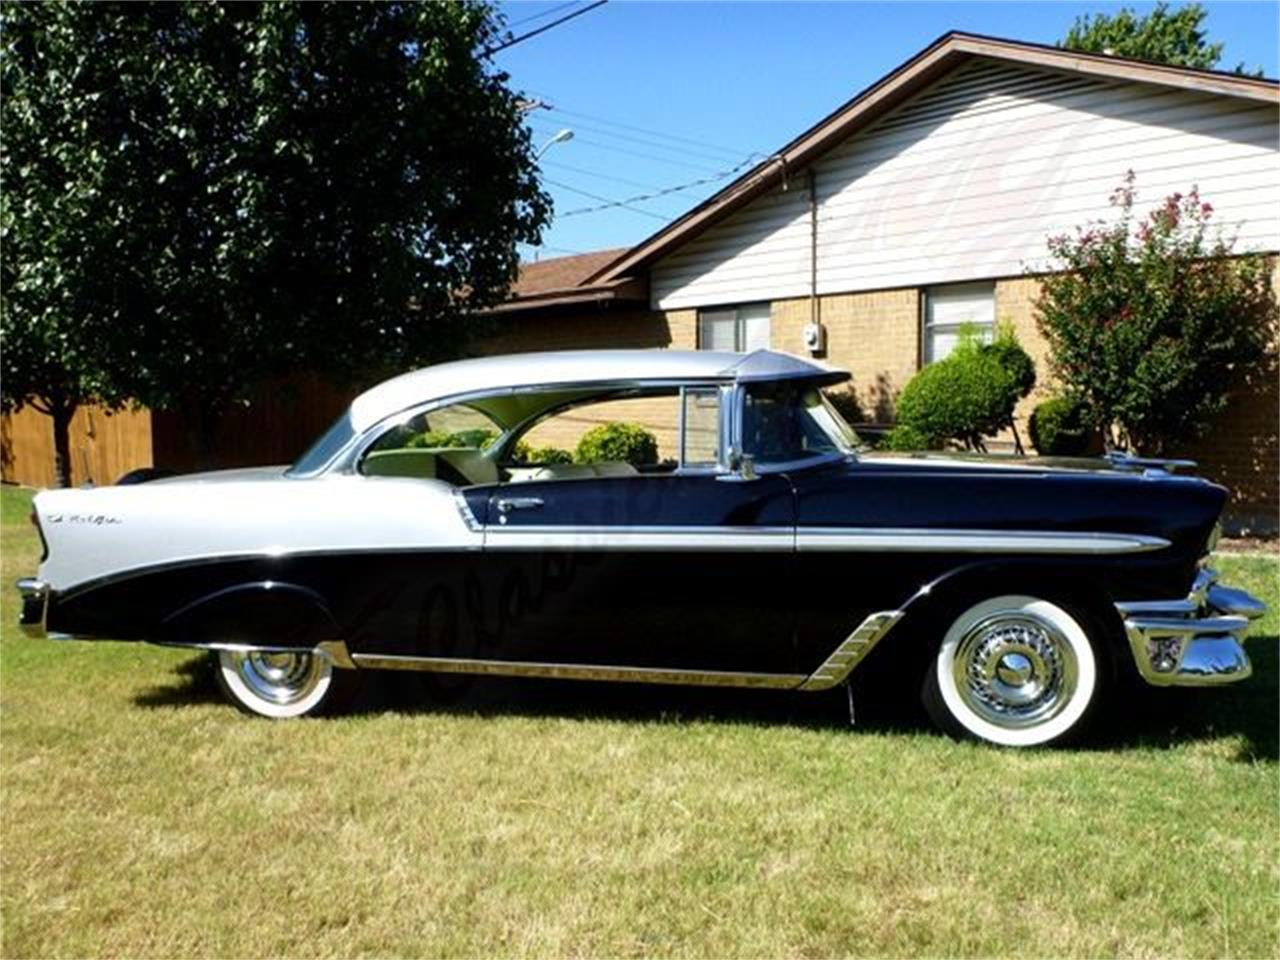 Large Picture of 1956 Chevrolet Bel Air located in Arlington Texas - $46,000.00 Offered by Classical Gas Enterprises - CH55